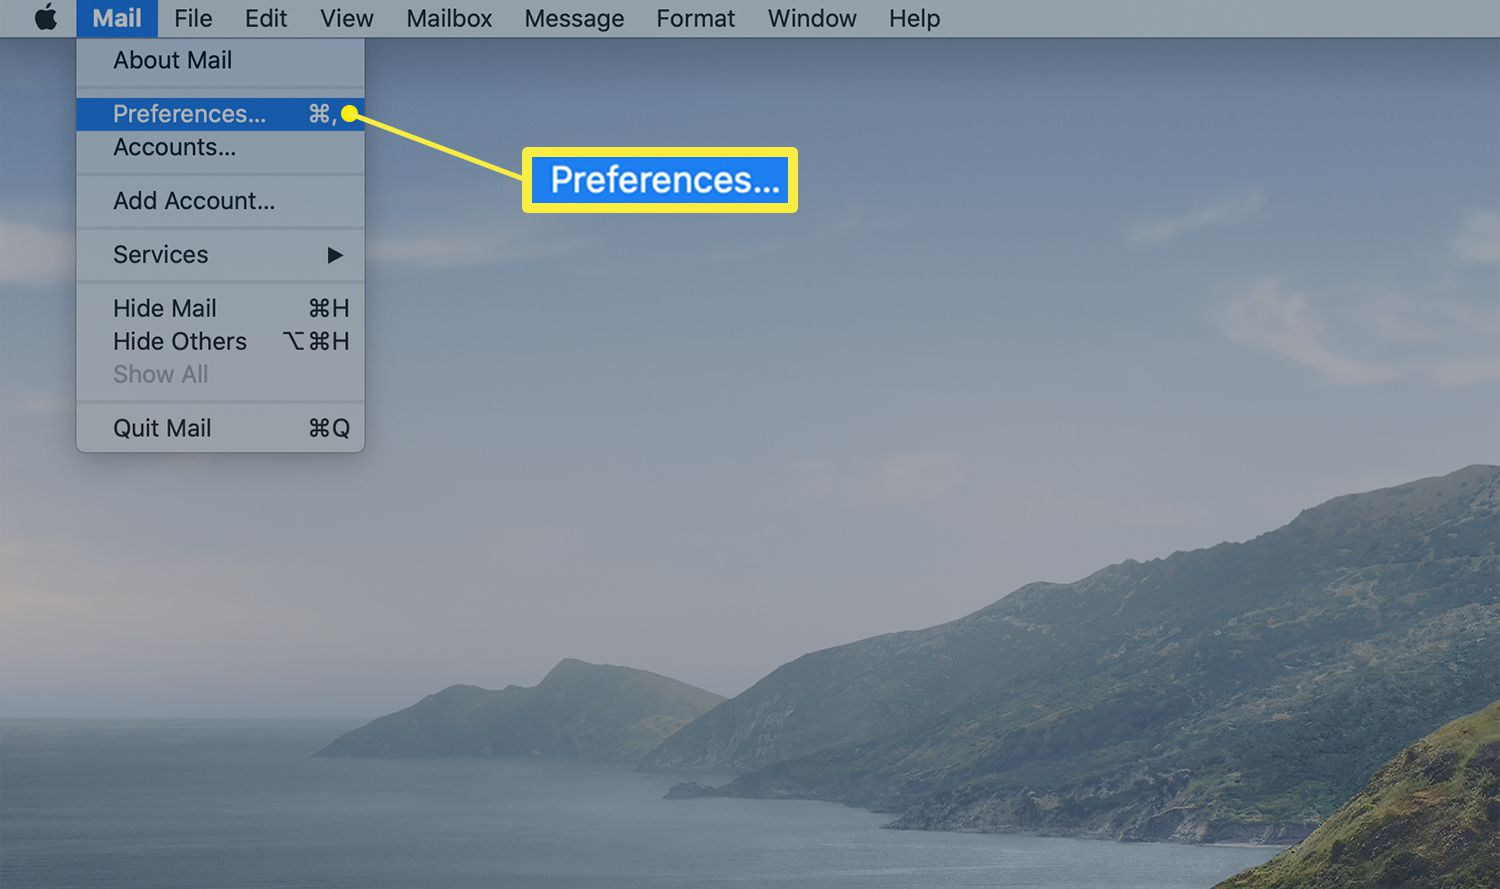 Menu bar of the Mail application on a Mac showing Preferences option